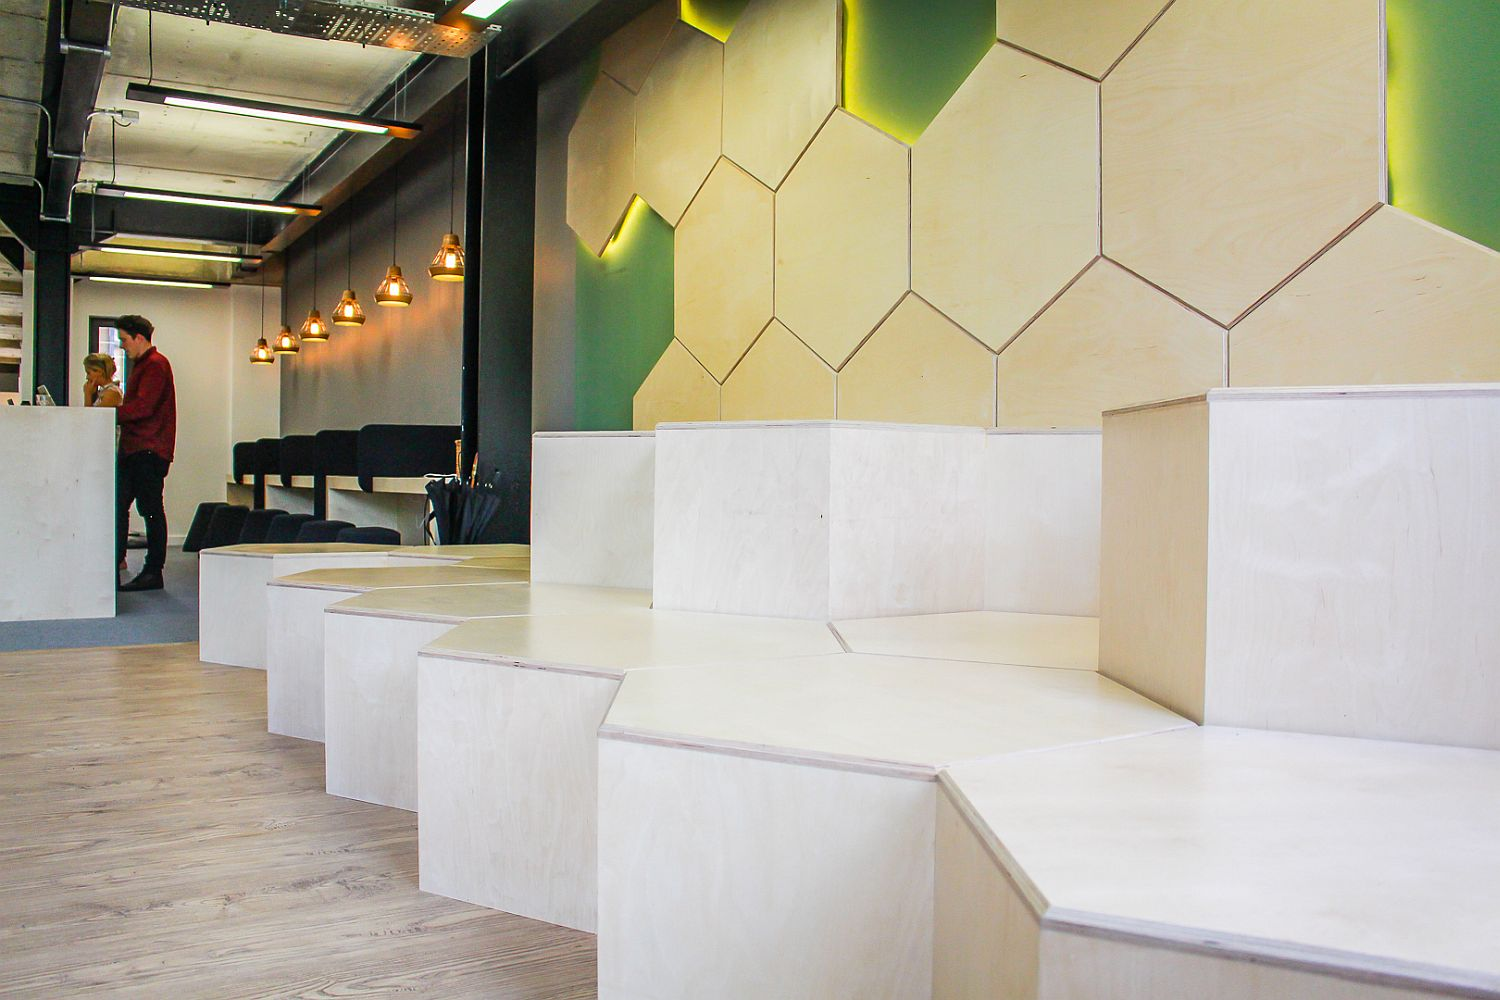 Hexagonal tiered seating for the office cafe area